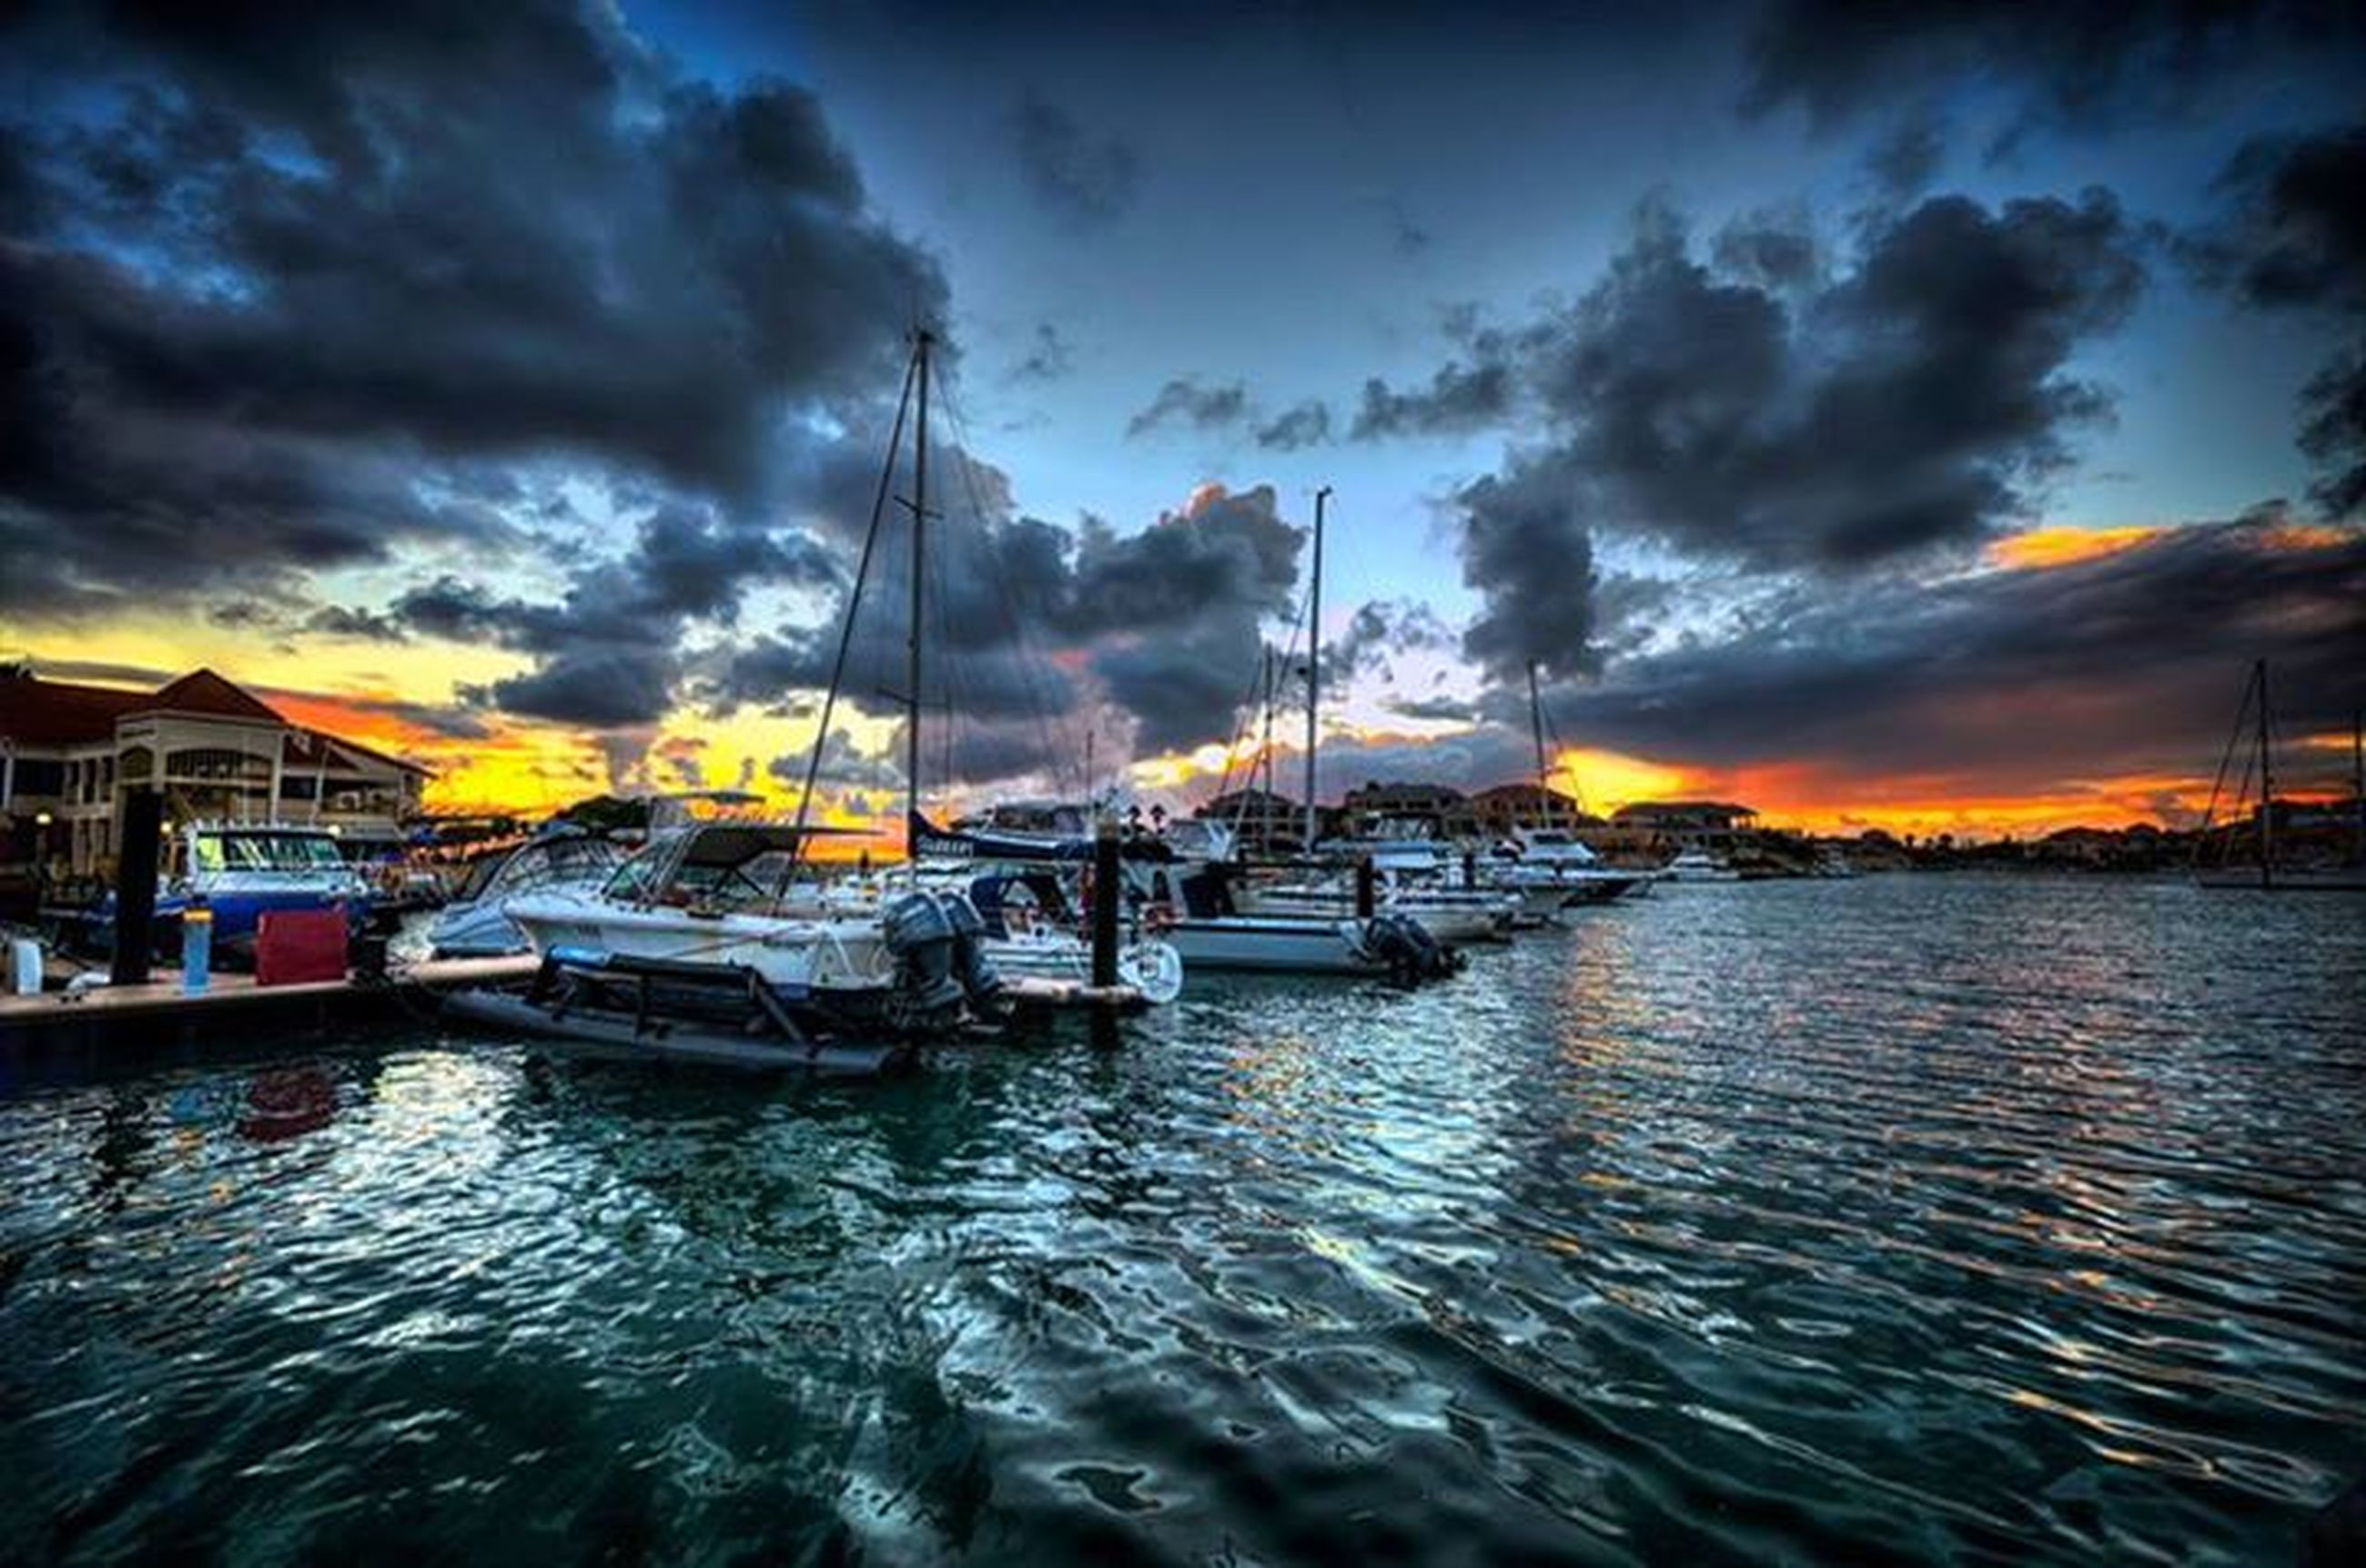 water, nautical vessel, transportation, sky, cloud - sky, mode of transport, sunset, waterfront, boat, cloudy, moored, sea, cloud, harbor, mast, weather, rippled, nature, dramatic sky, scenics